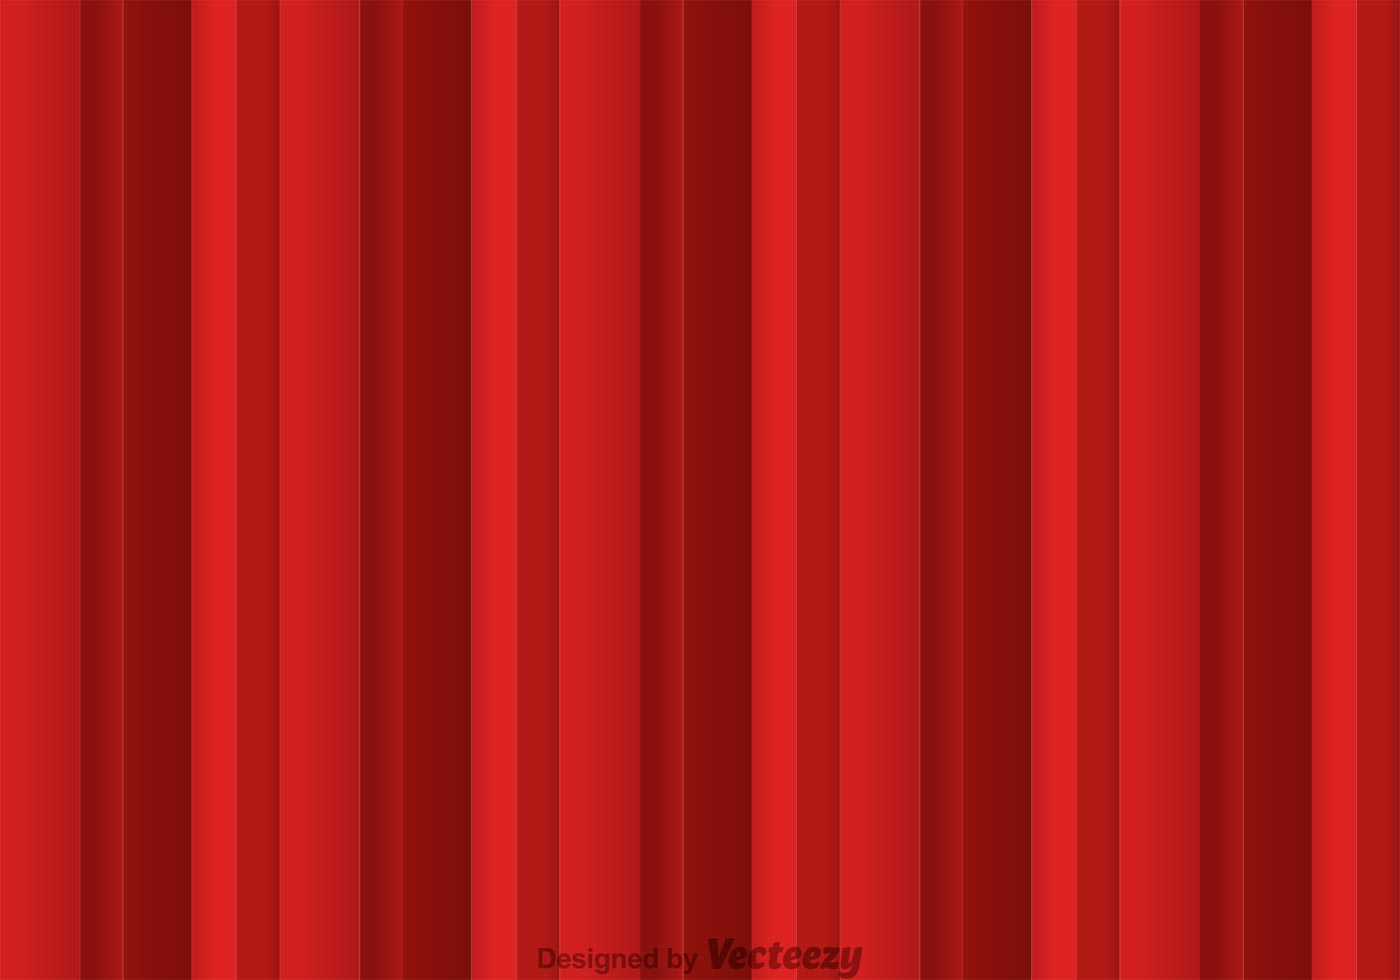 wallpaper background red linear - photo #33